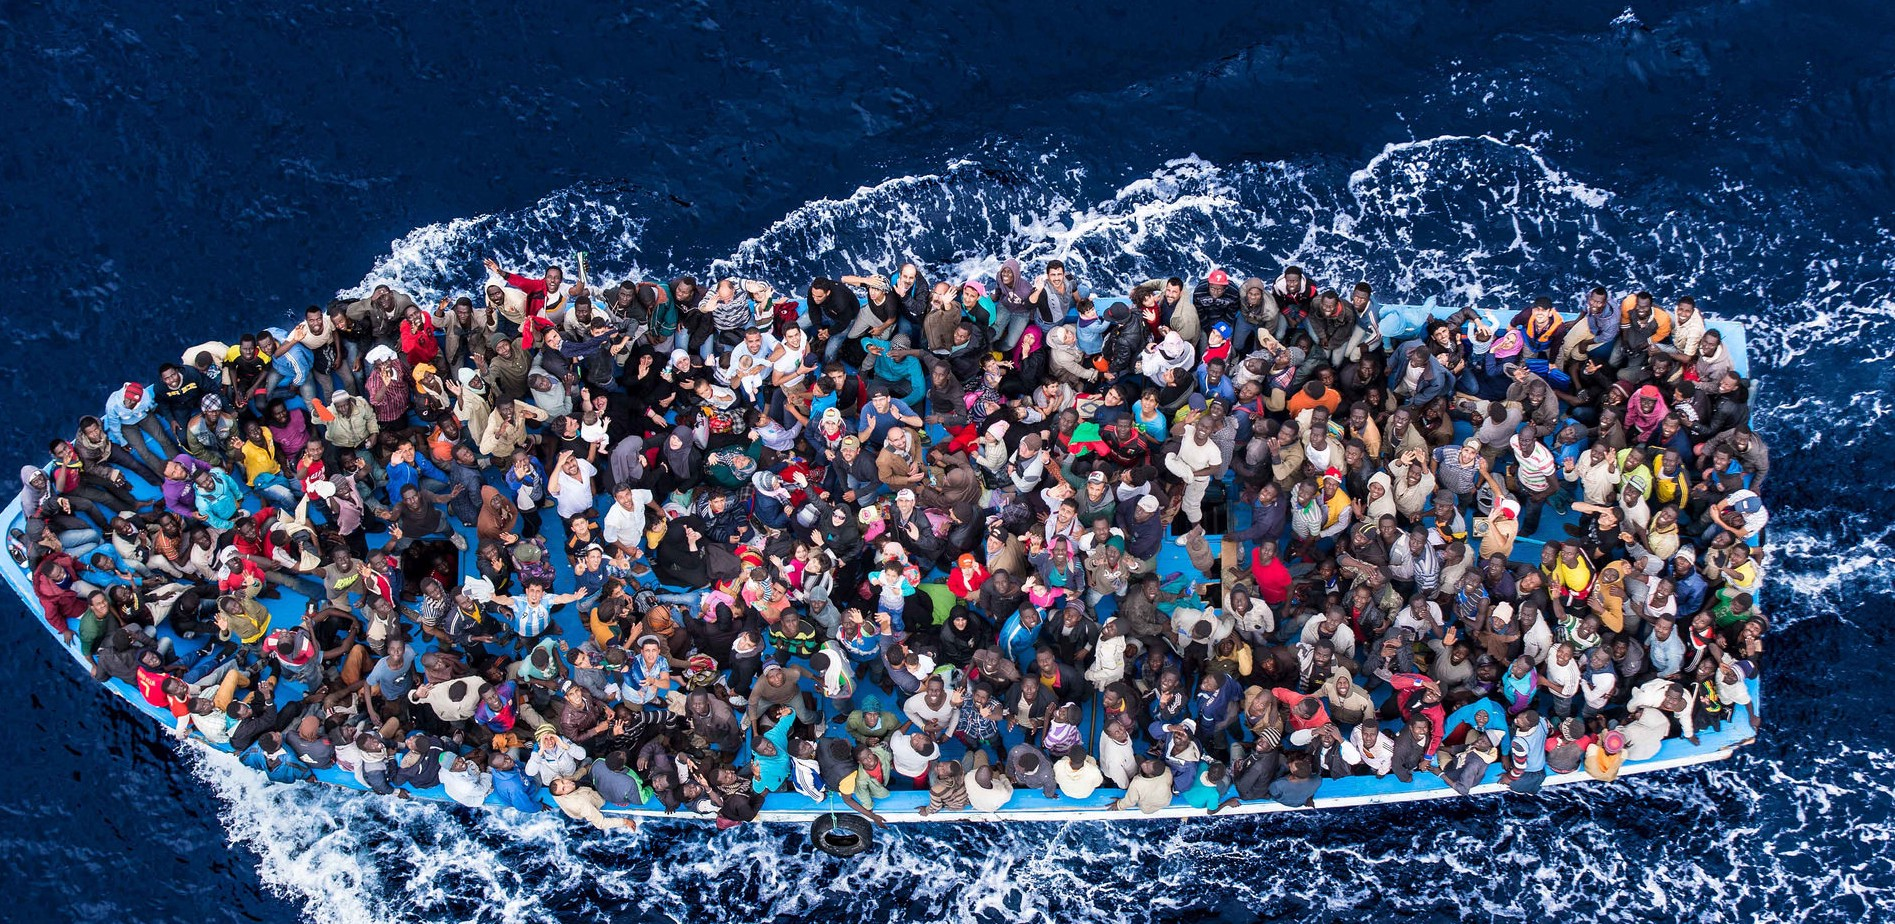 Migration The Future Depends On Our Actions Today